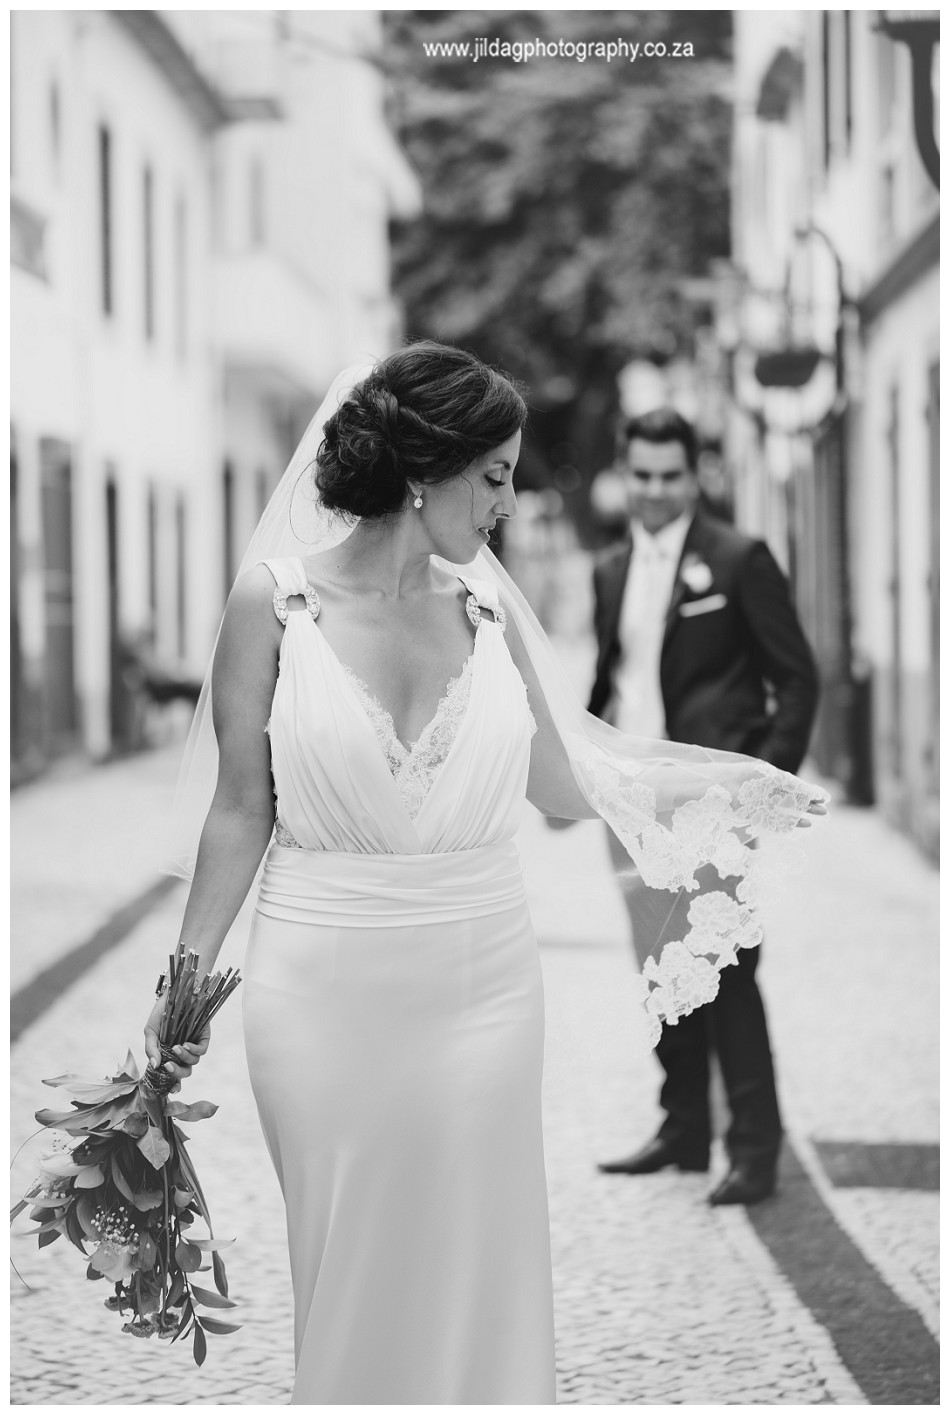 Destination wedding, Madeira, Portugal wedding, Jilda G Photography (97)